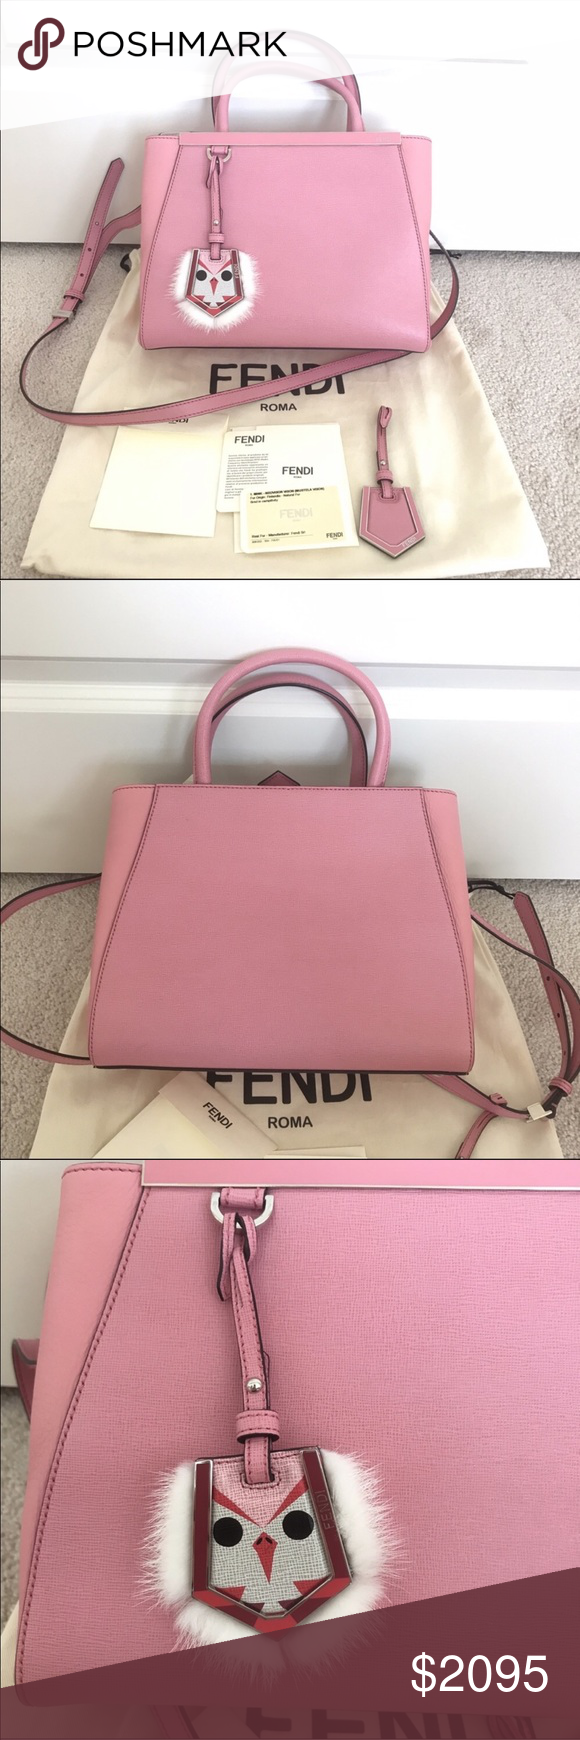 Authentic Fendi 2jours petite tote Brand new with tag. Comes with original  dustbag, extra a9e88c1d88